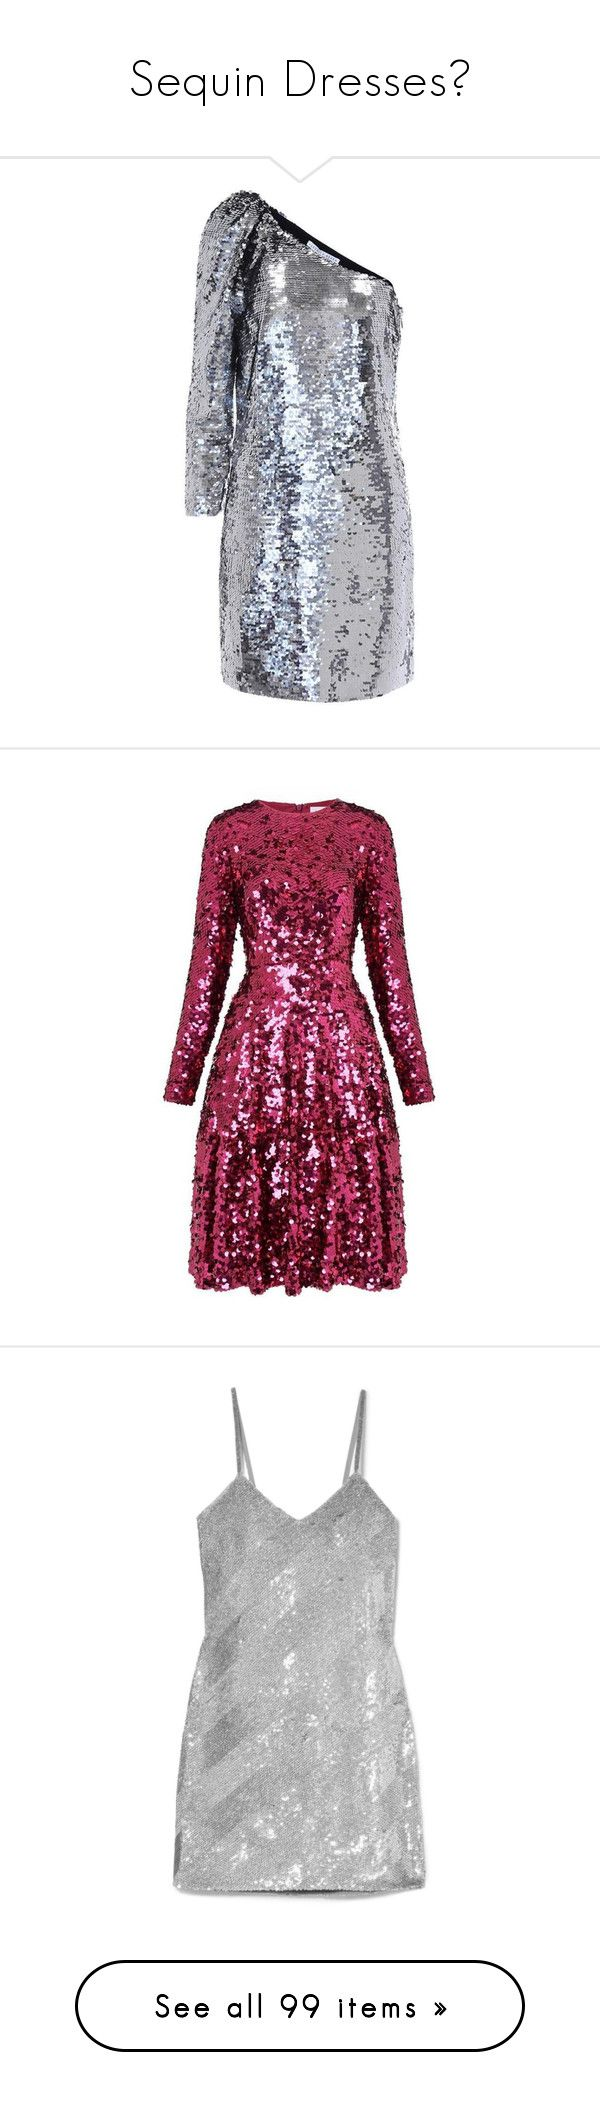 """""""Sequin Dresses💎"""" by moon-crystal-wolf ❤ liked on Polyvore featuring dresses, silver, embellished short dress, embelished dress, short dresses, embellished cocktail dresses, silver embellished dress, long sleeve cocktail dresses, sequin cocktail dresses and purple long sleeve dress"""